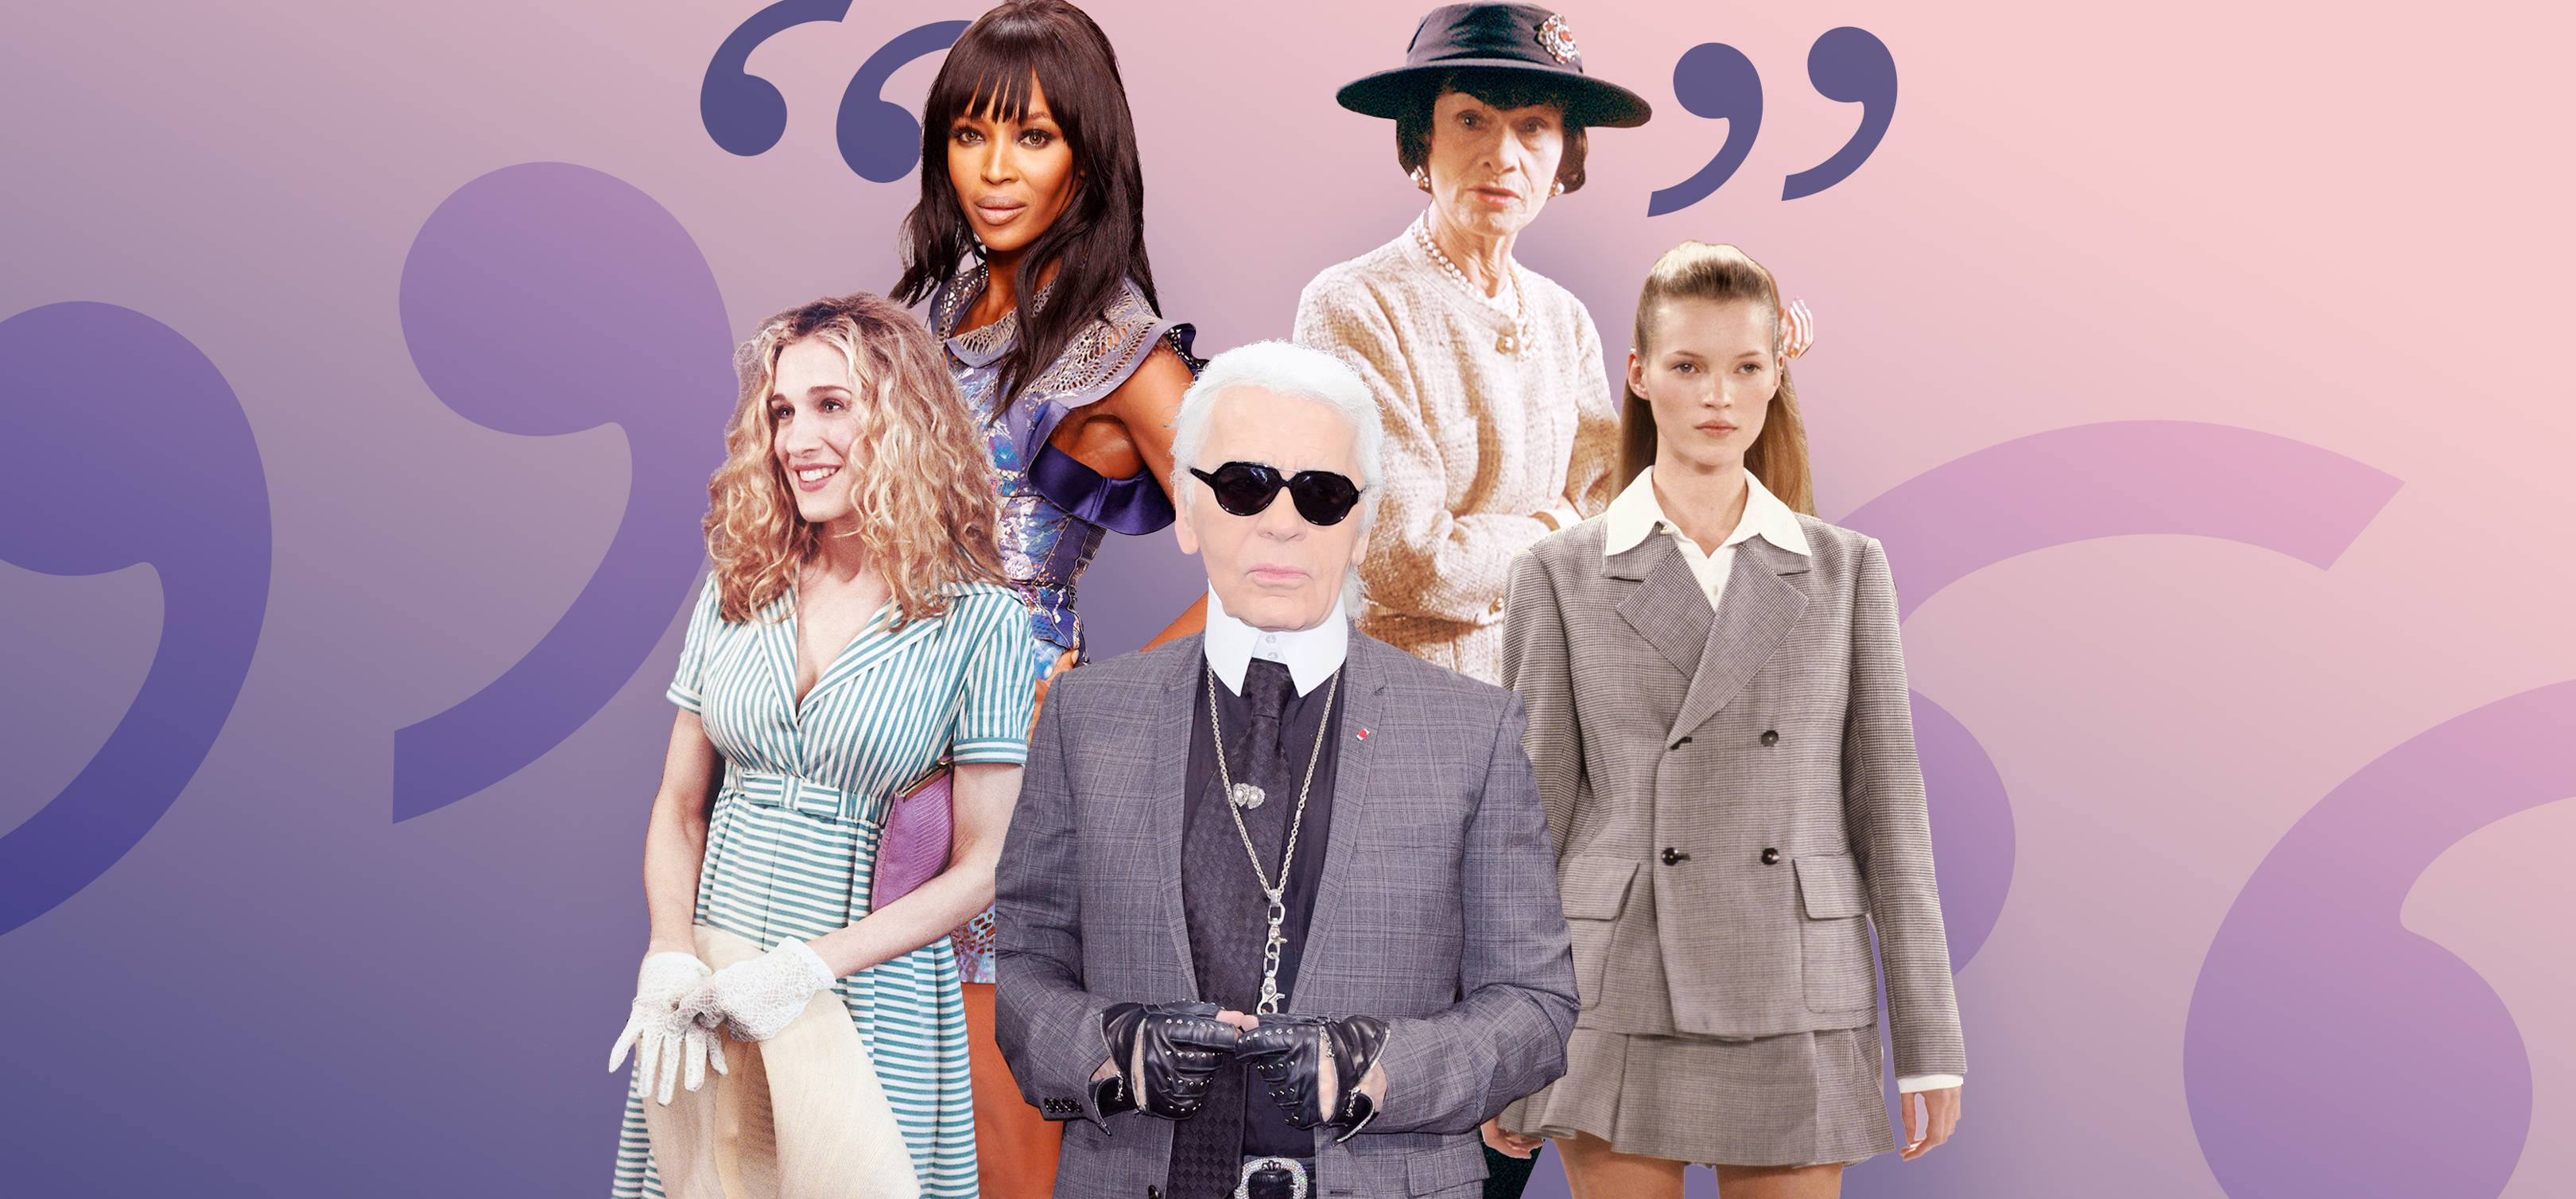 36 Best Fashion Quotes of All Time | Glamour UK